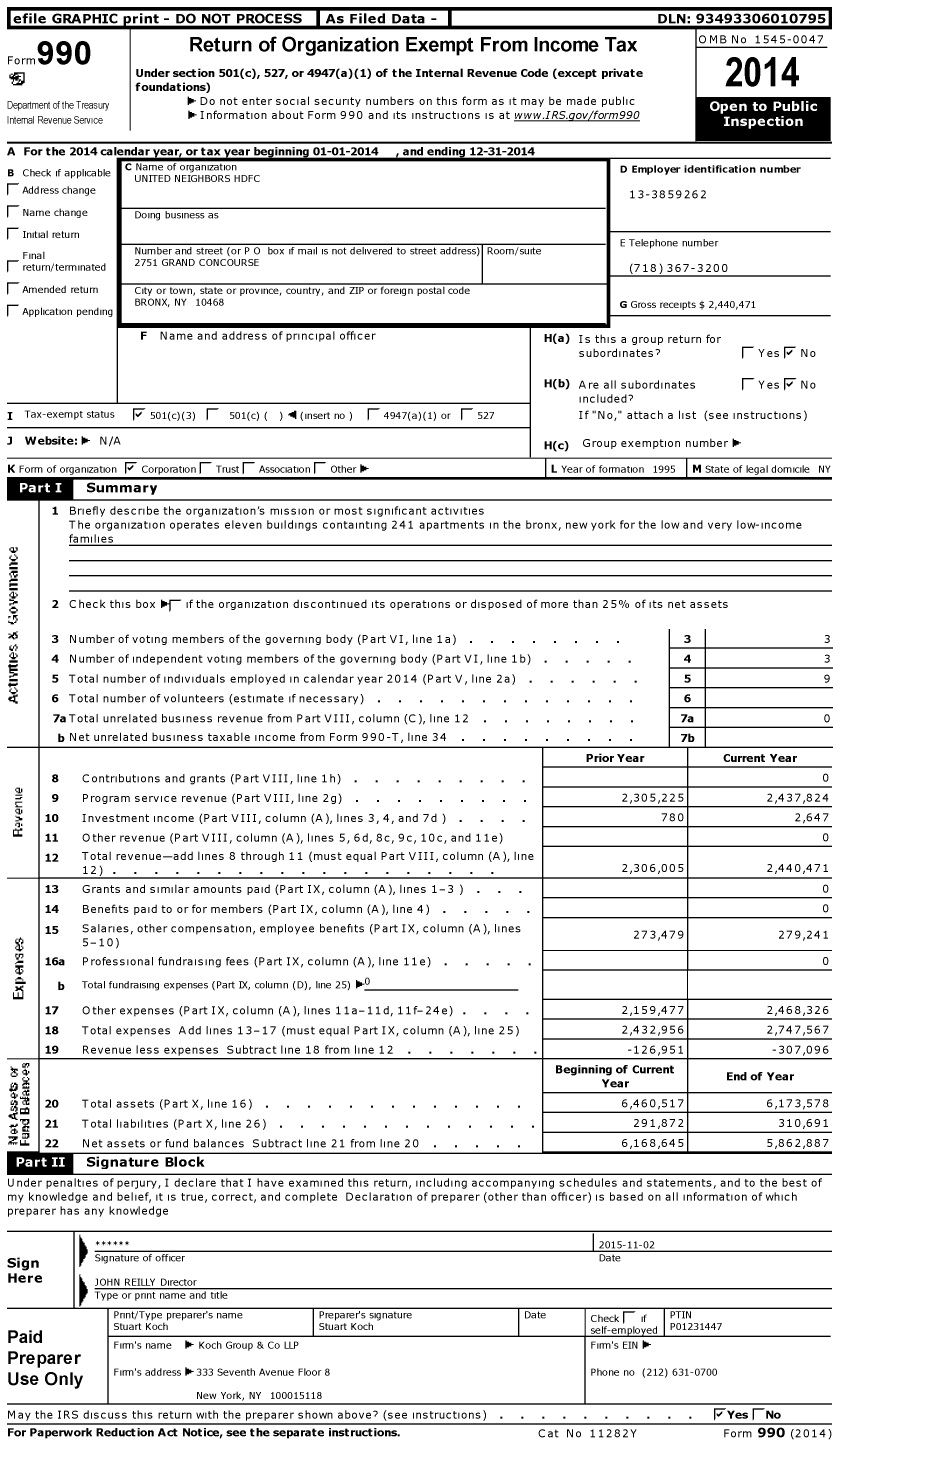 Image of first page of 2014 Form 990 for United Neighbors Housing Development Fund Company